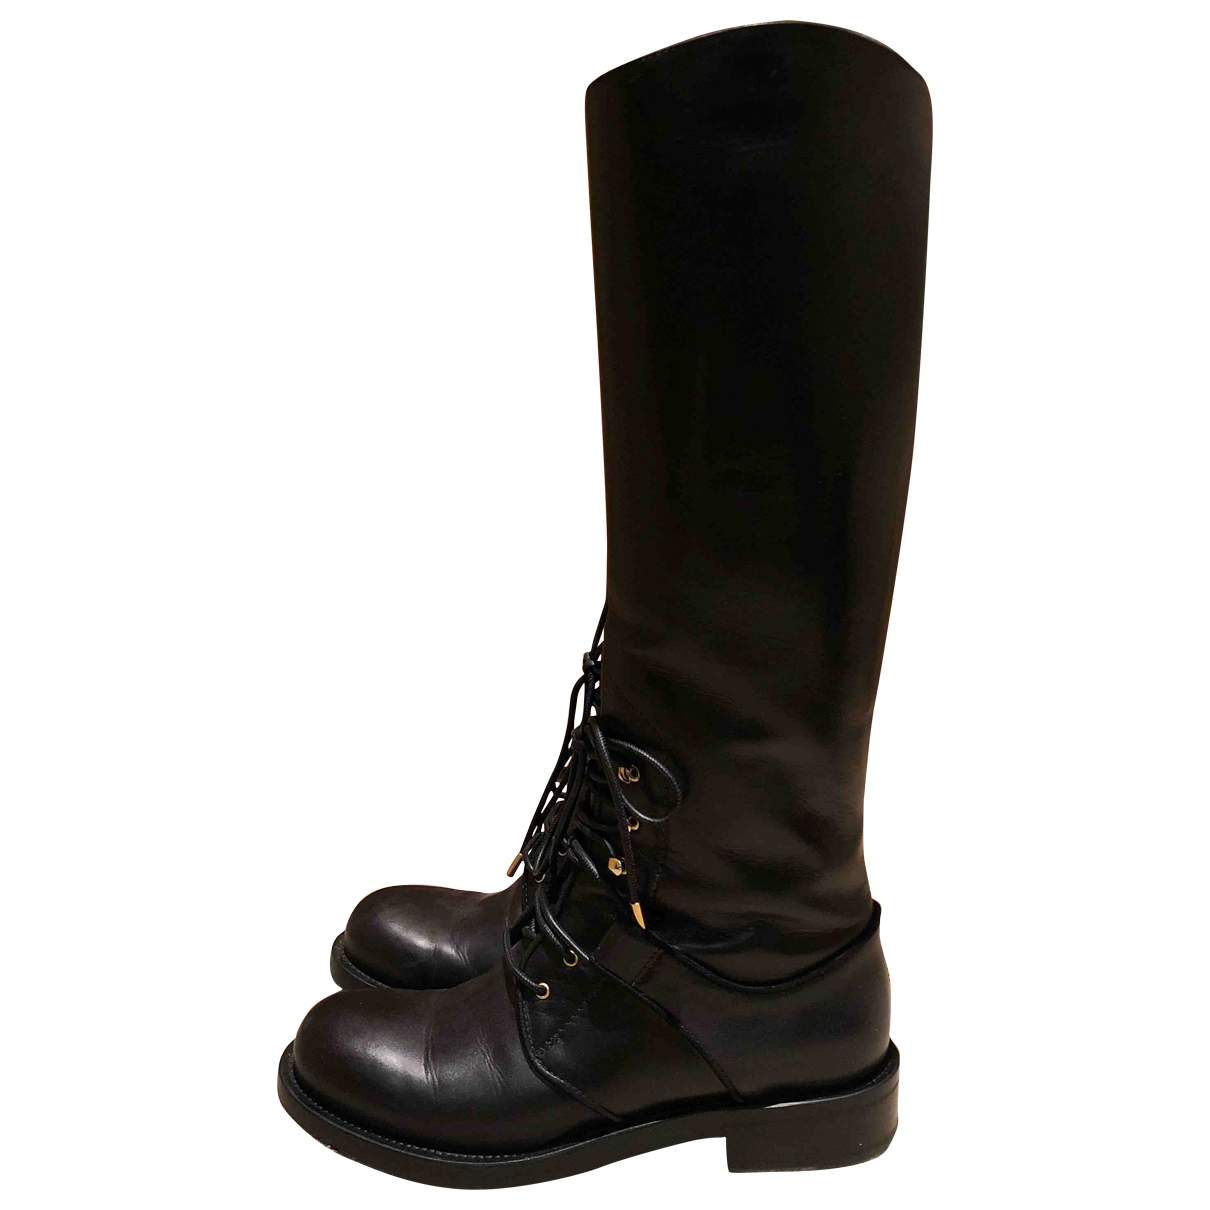 Alexander Mcqueen \N Black Leather Boots for Women 36.5 EU